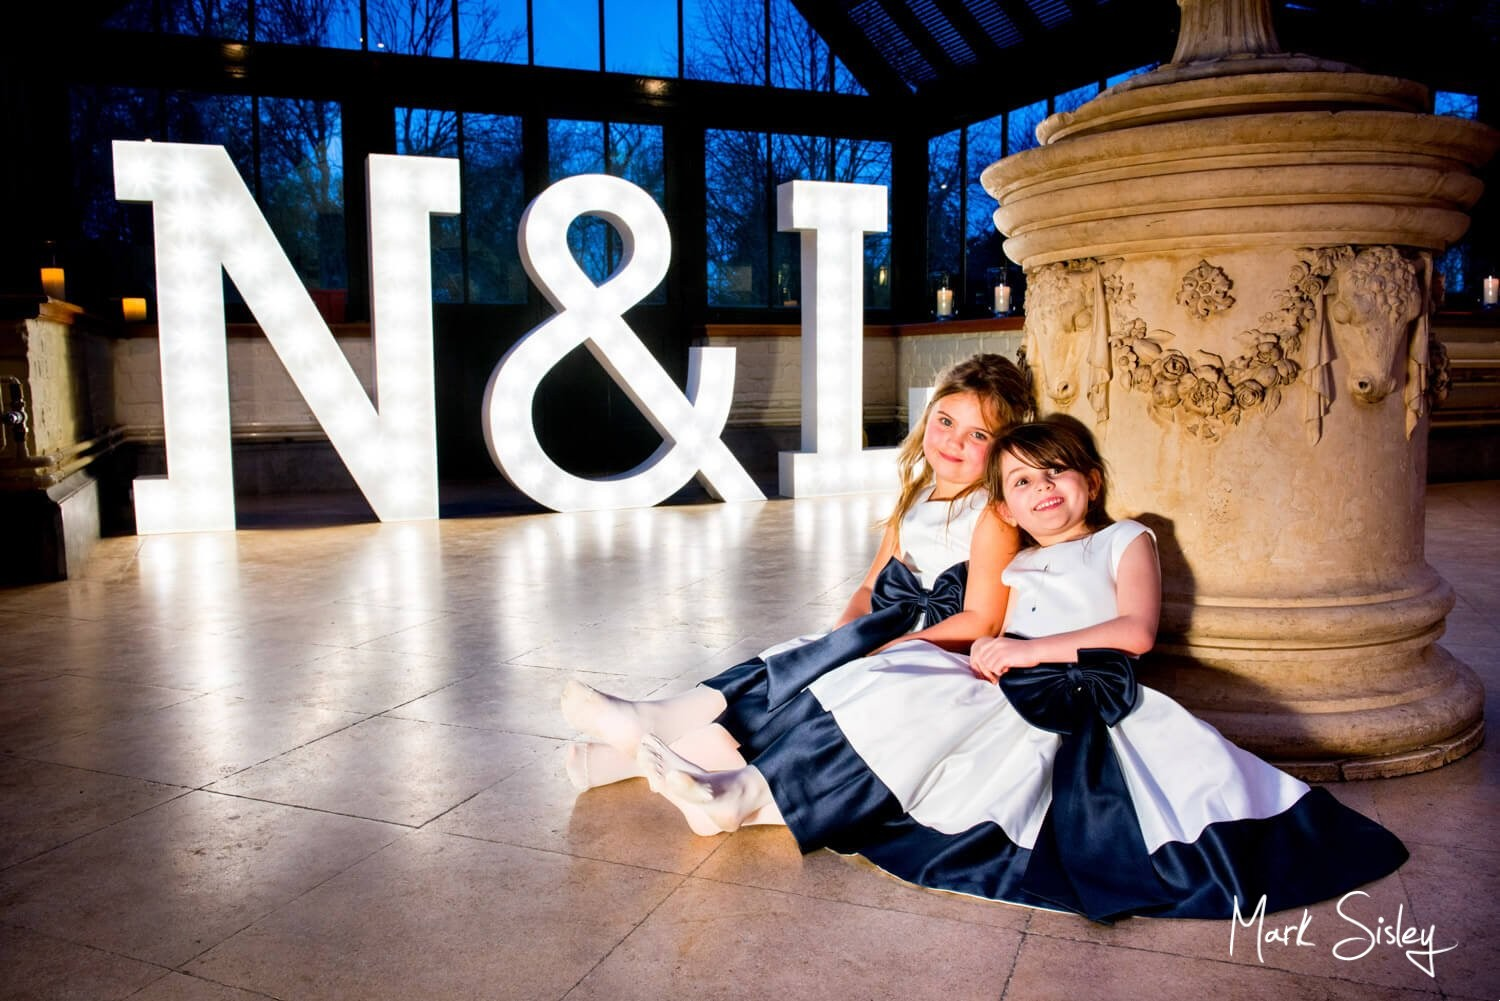 Choosing a wedding photographer - bridesmaids and giant illuminated letters